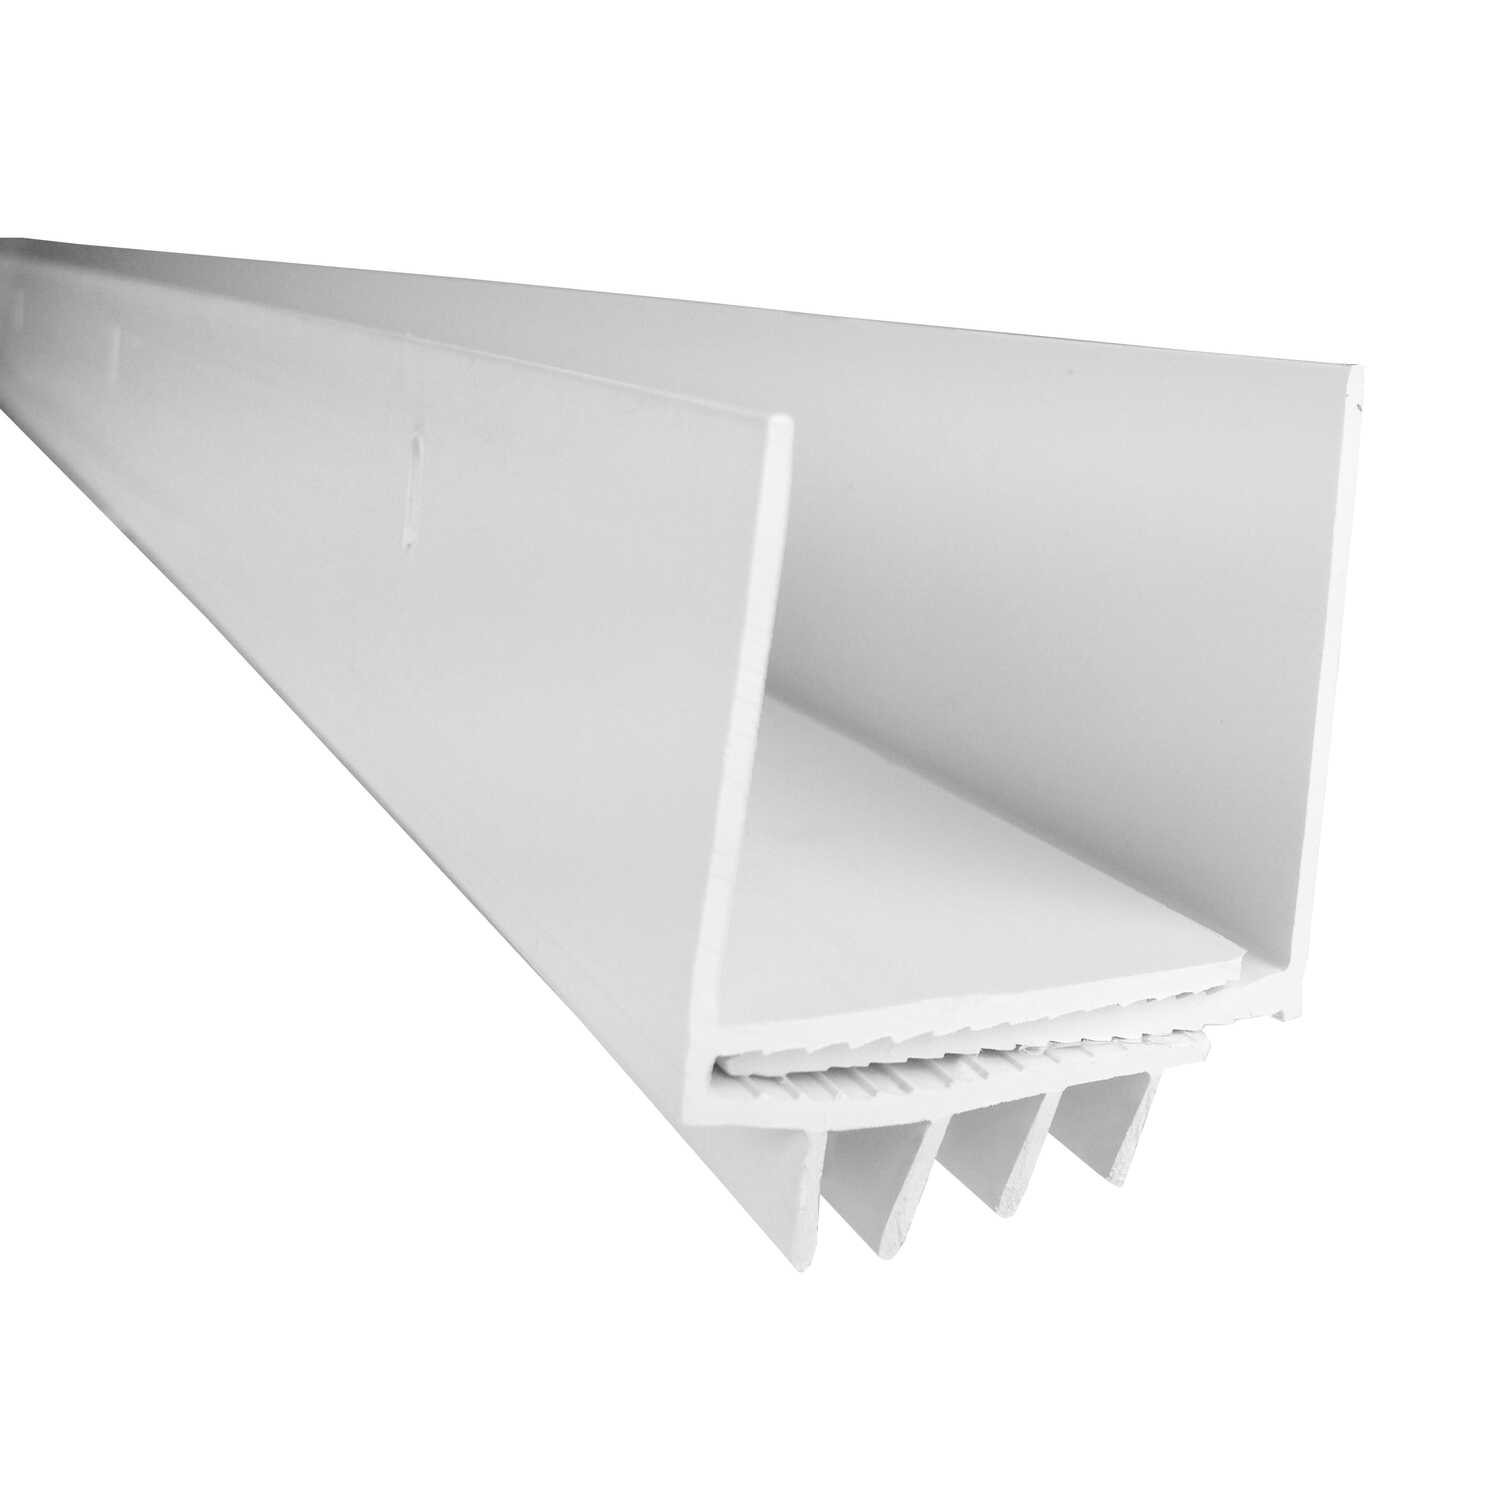 M-D Building Products  White  Vinyl  Door Bottom  For U-shaped 3 ft. L x 1-3/4 in.